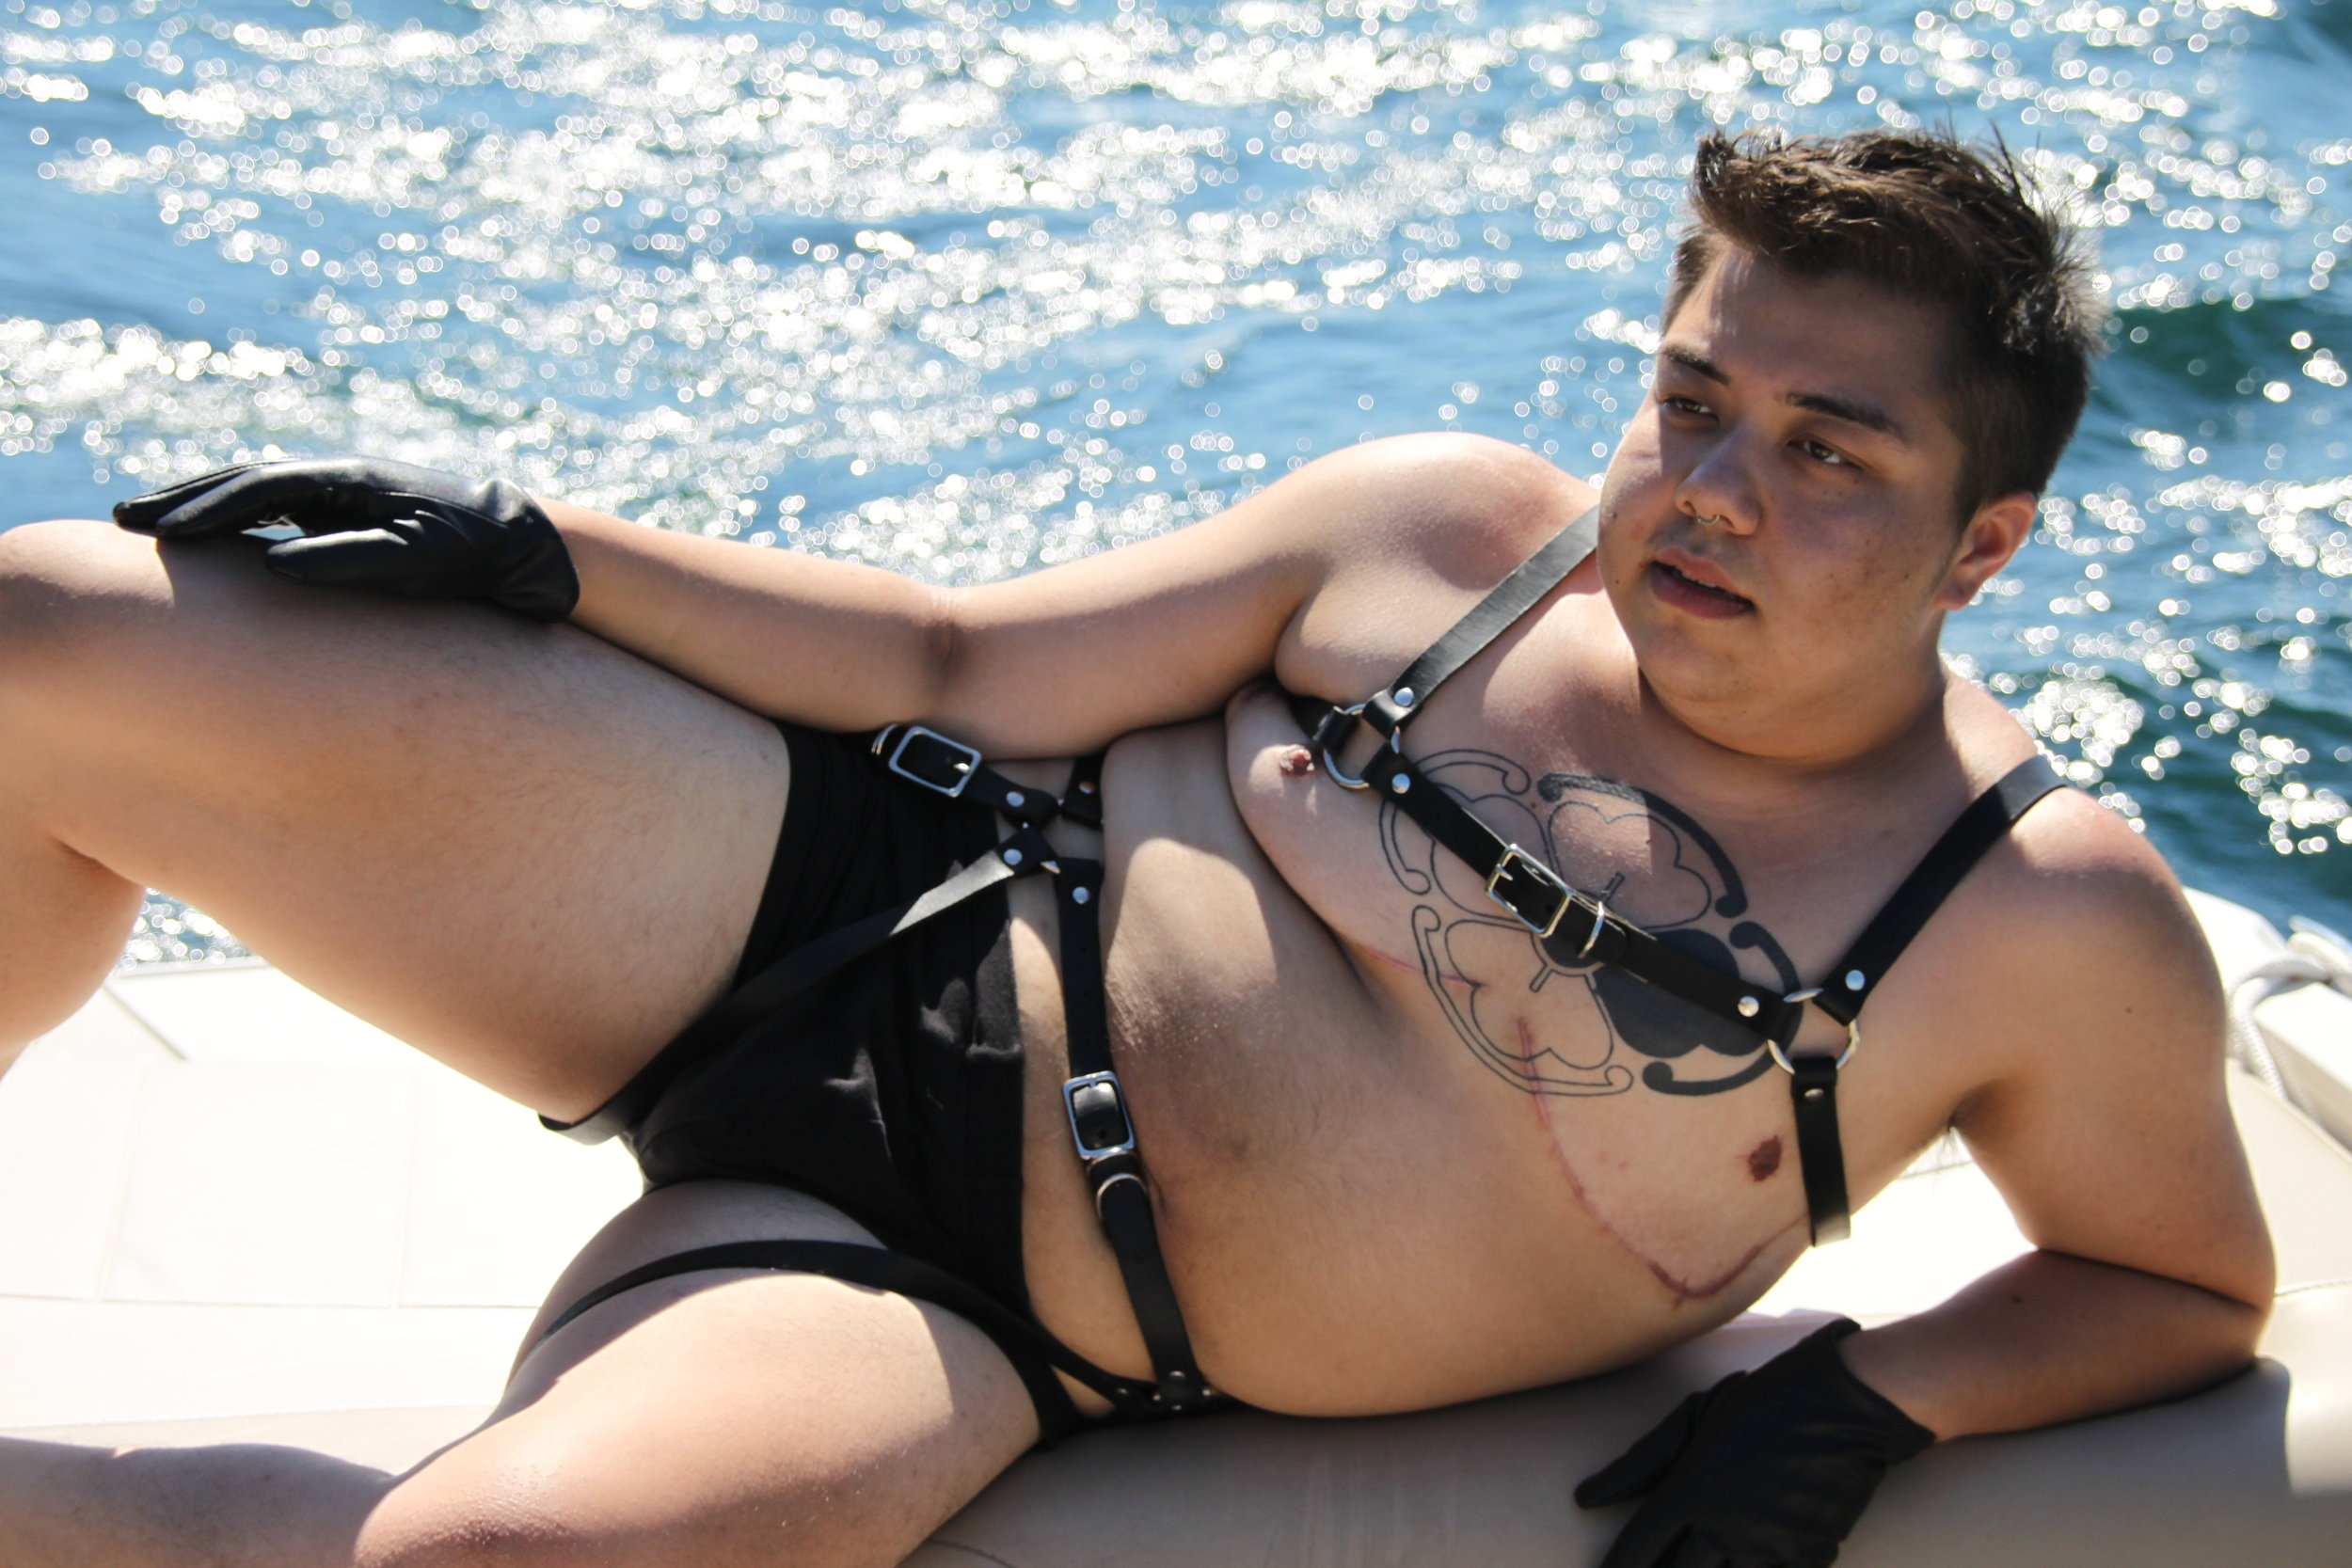 Leather Coven_waves - Mateo Medina.JPG